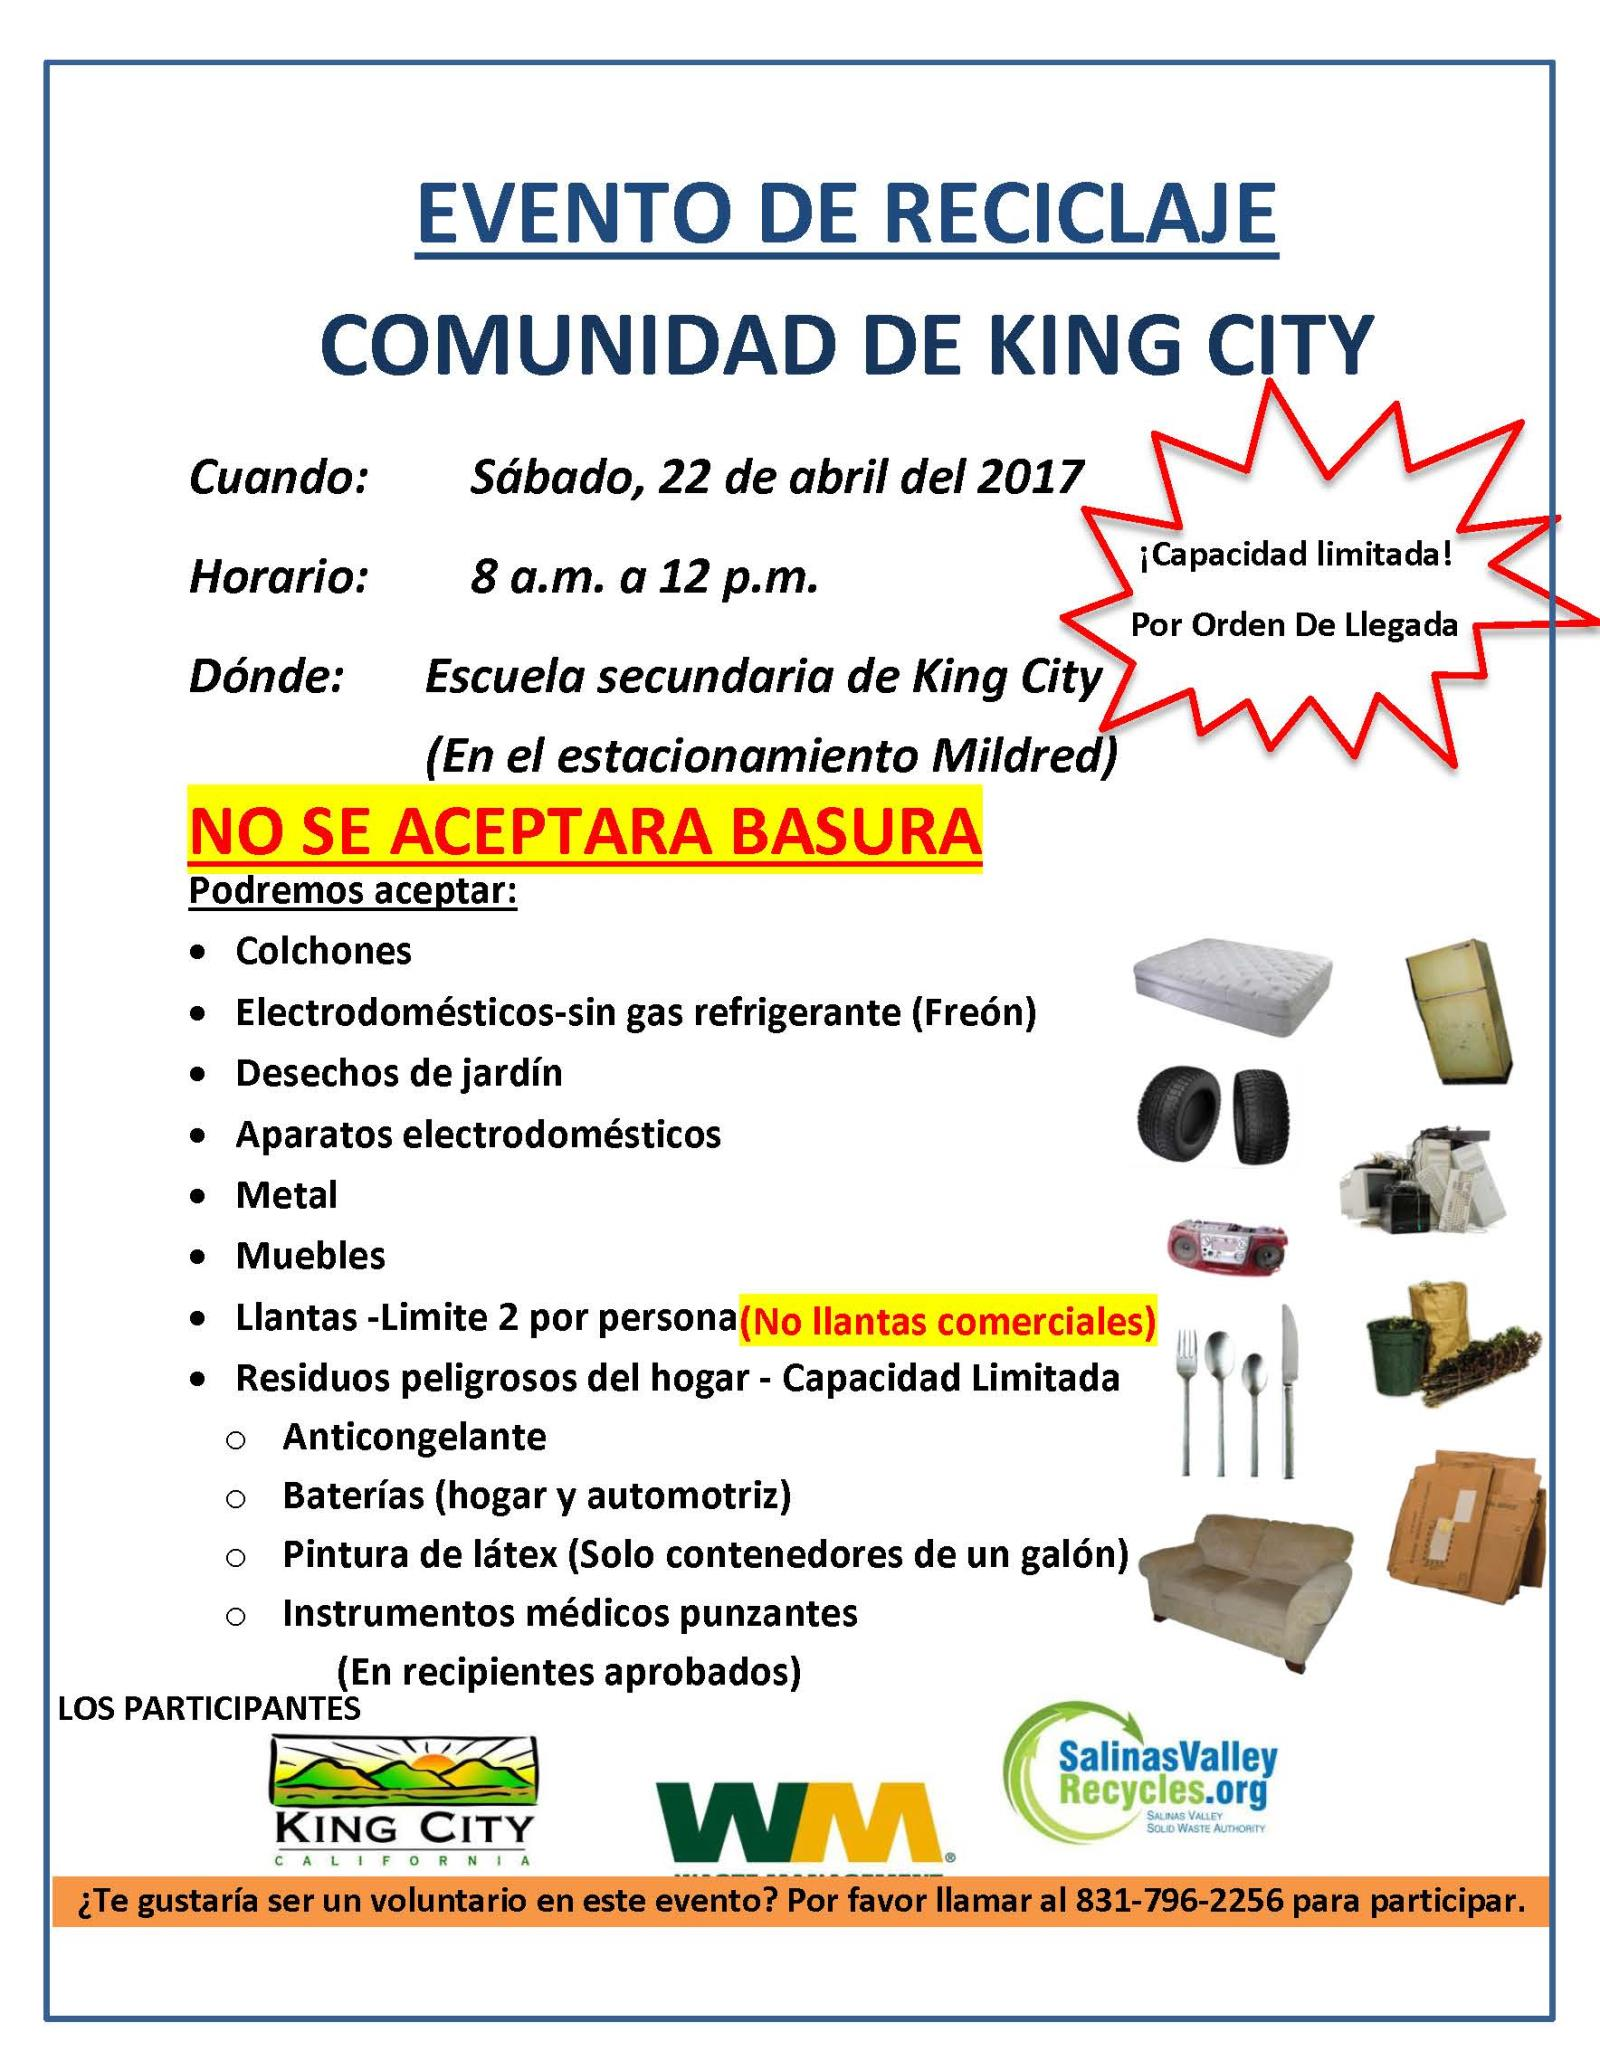 King City Community Recycle Event Flyer 4-22-2017 _Page_2